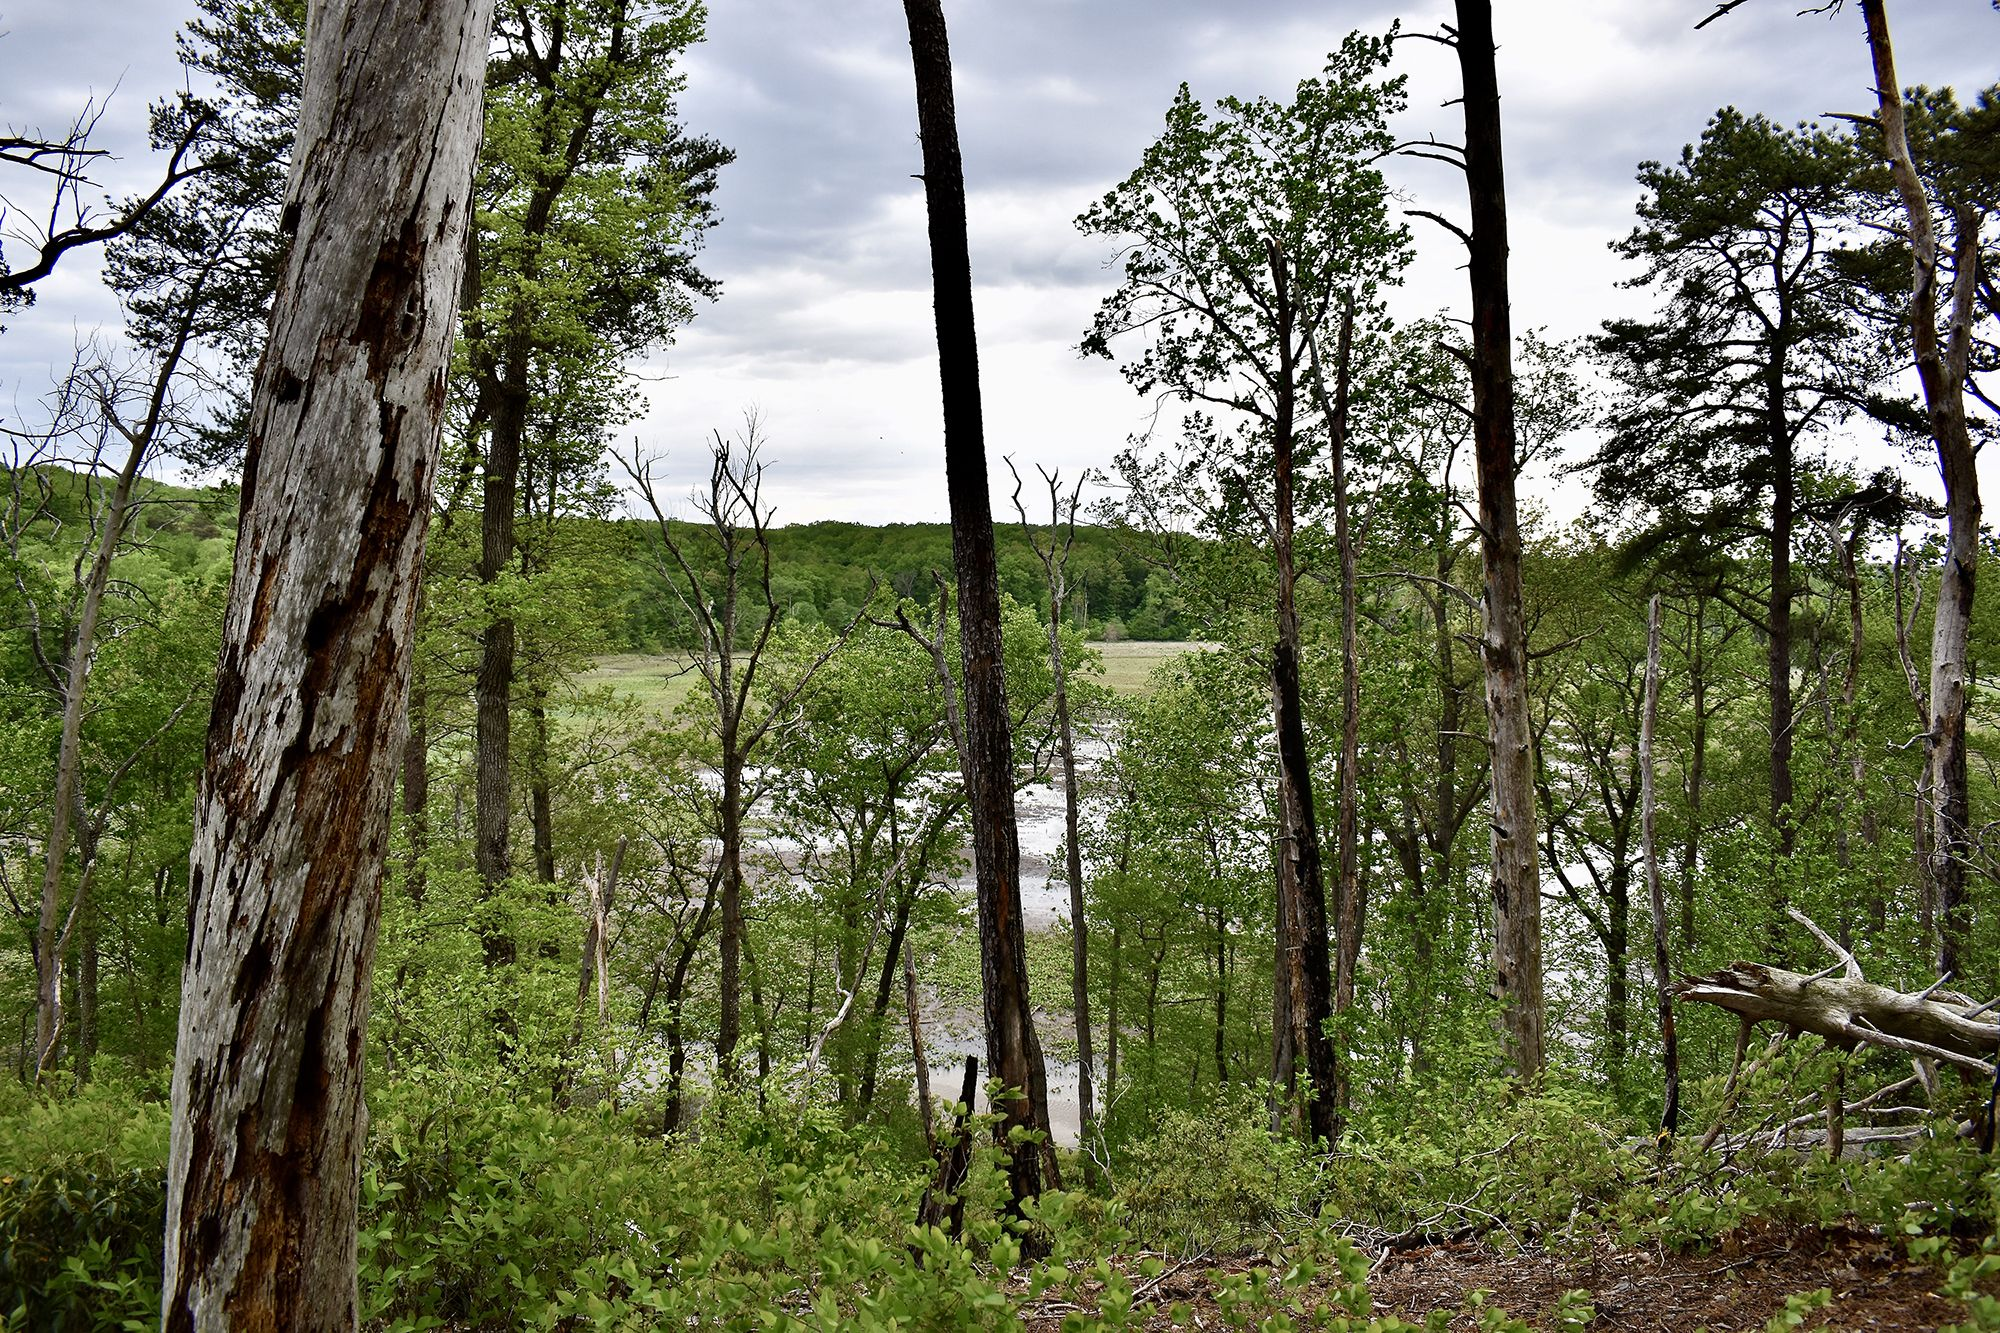 Tall trees obscure the view of a large impoundment lake in the background. Many of the trees are dead or dying due to beaver activity.